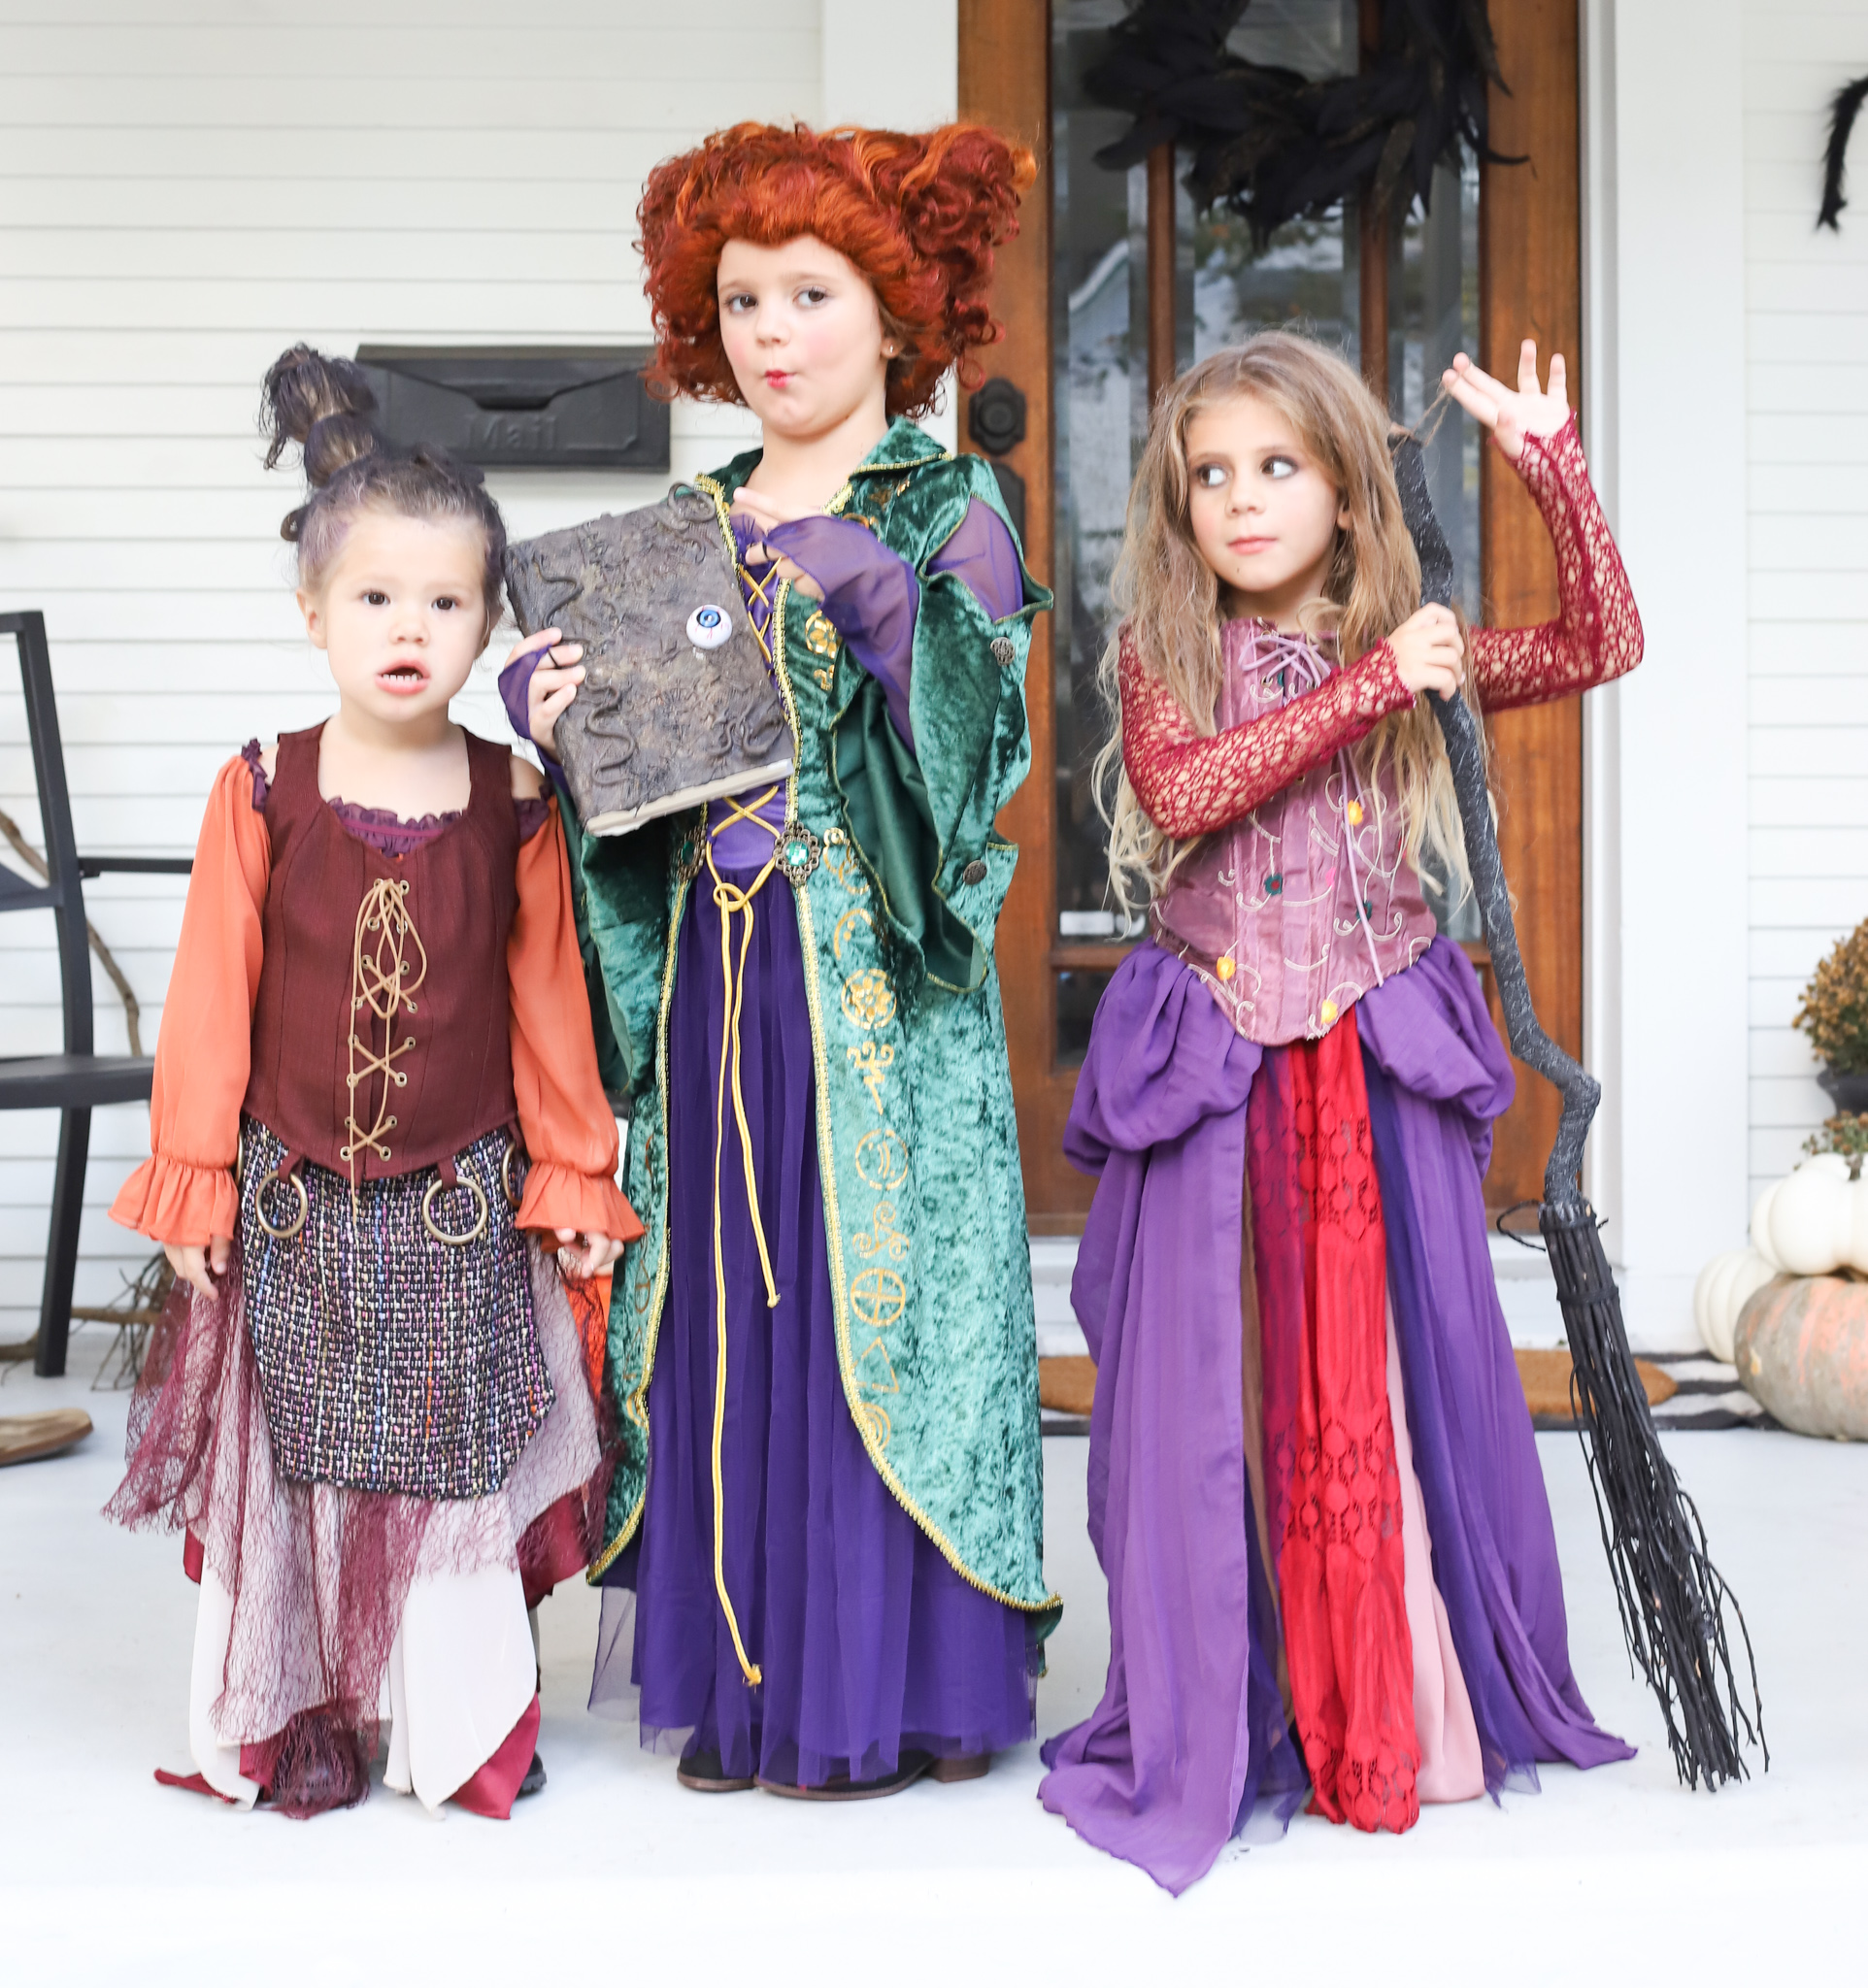 Sanderson sisters costumes for girls